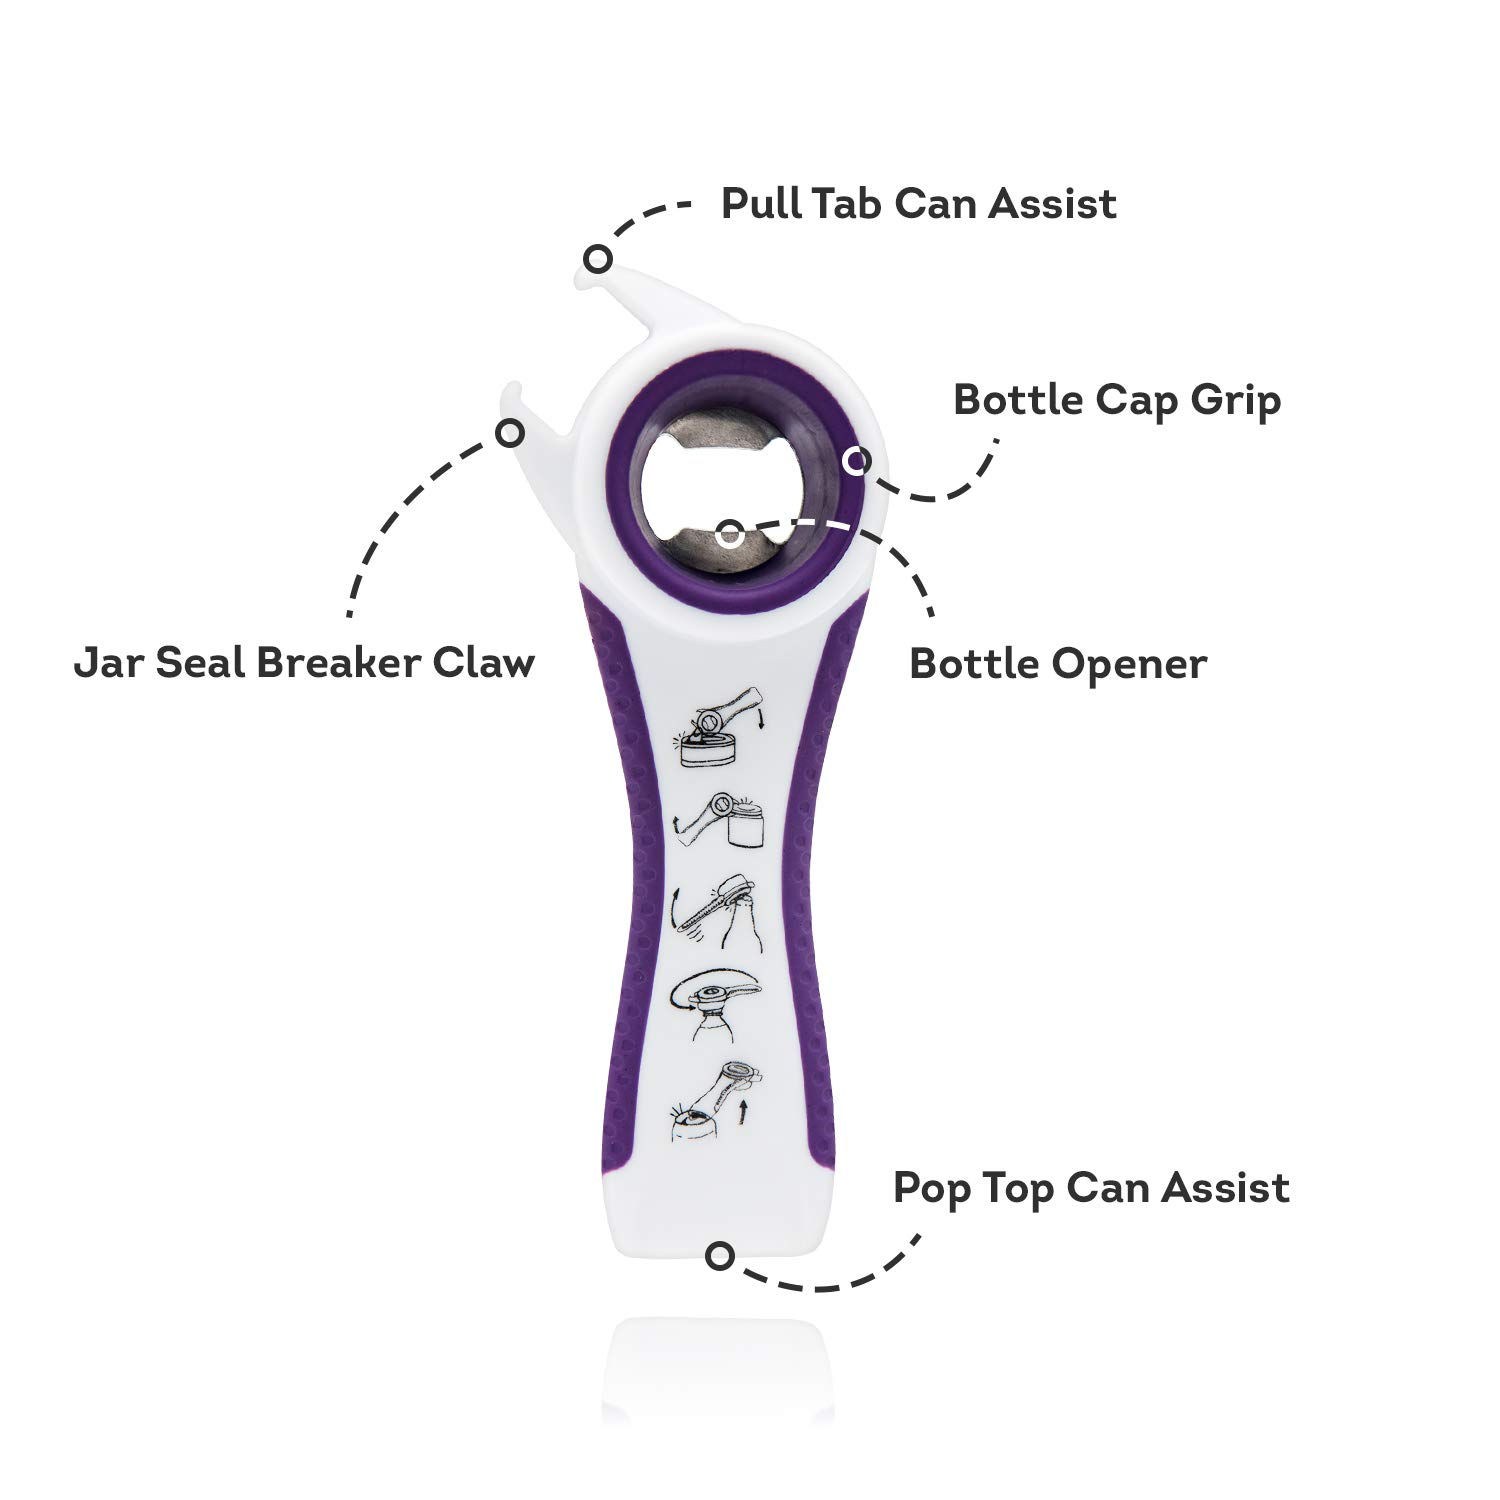 Multi Bottle Opener 5 in 1: Beer Top Opener, Jar Opener, Bottle Cap Grip, Jar Seal Breaker Claw. Chef\'s Best Multi Kitchen Tool. Screw Off Top & Pull Tab Assist for Prying Lids Off Without Straining